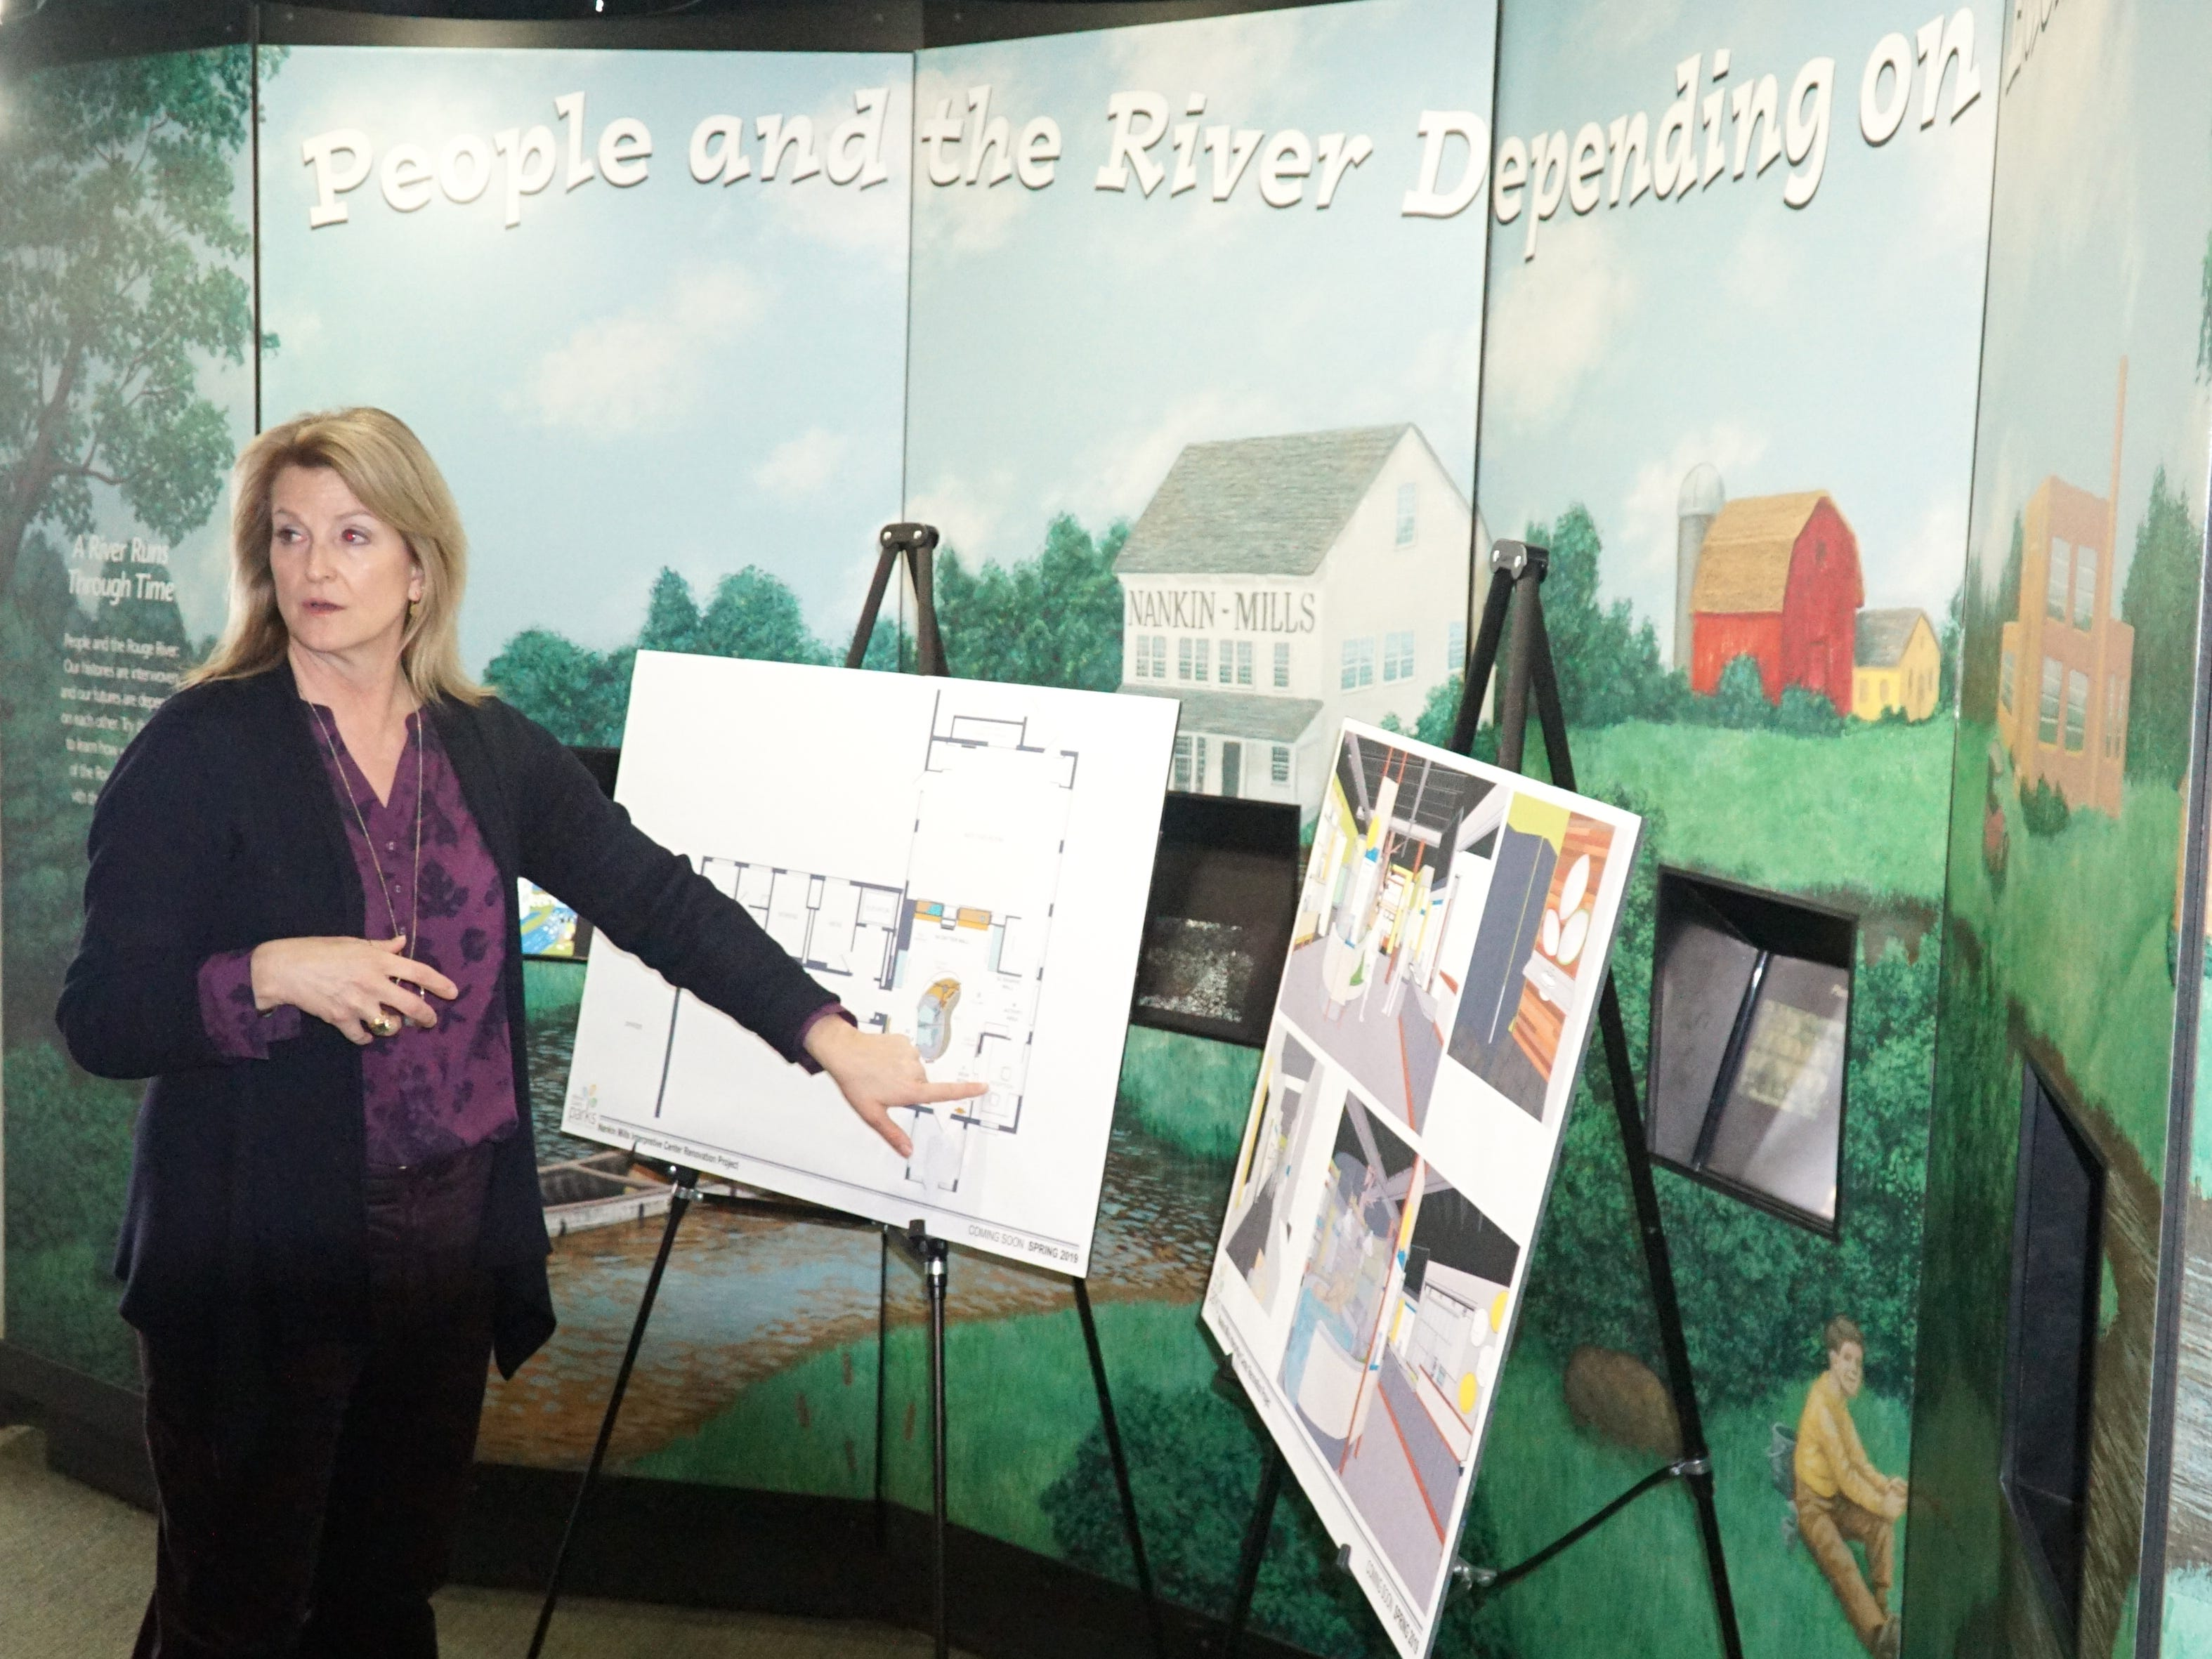 Elizabeth Iszler, Chief of Planning at Wayne County Parks, goes over some proposed renovations of the county's Nankin Mills Interpretive Center on Feb. 20. The nearly quarter million update will mean more interactive and updated displays at the center off Ann Arbor trail in Westland.